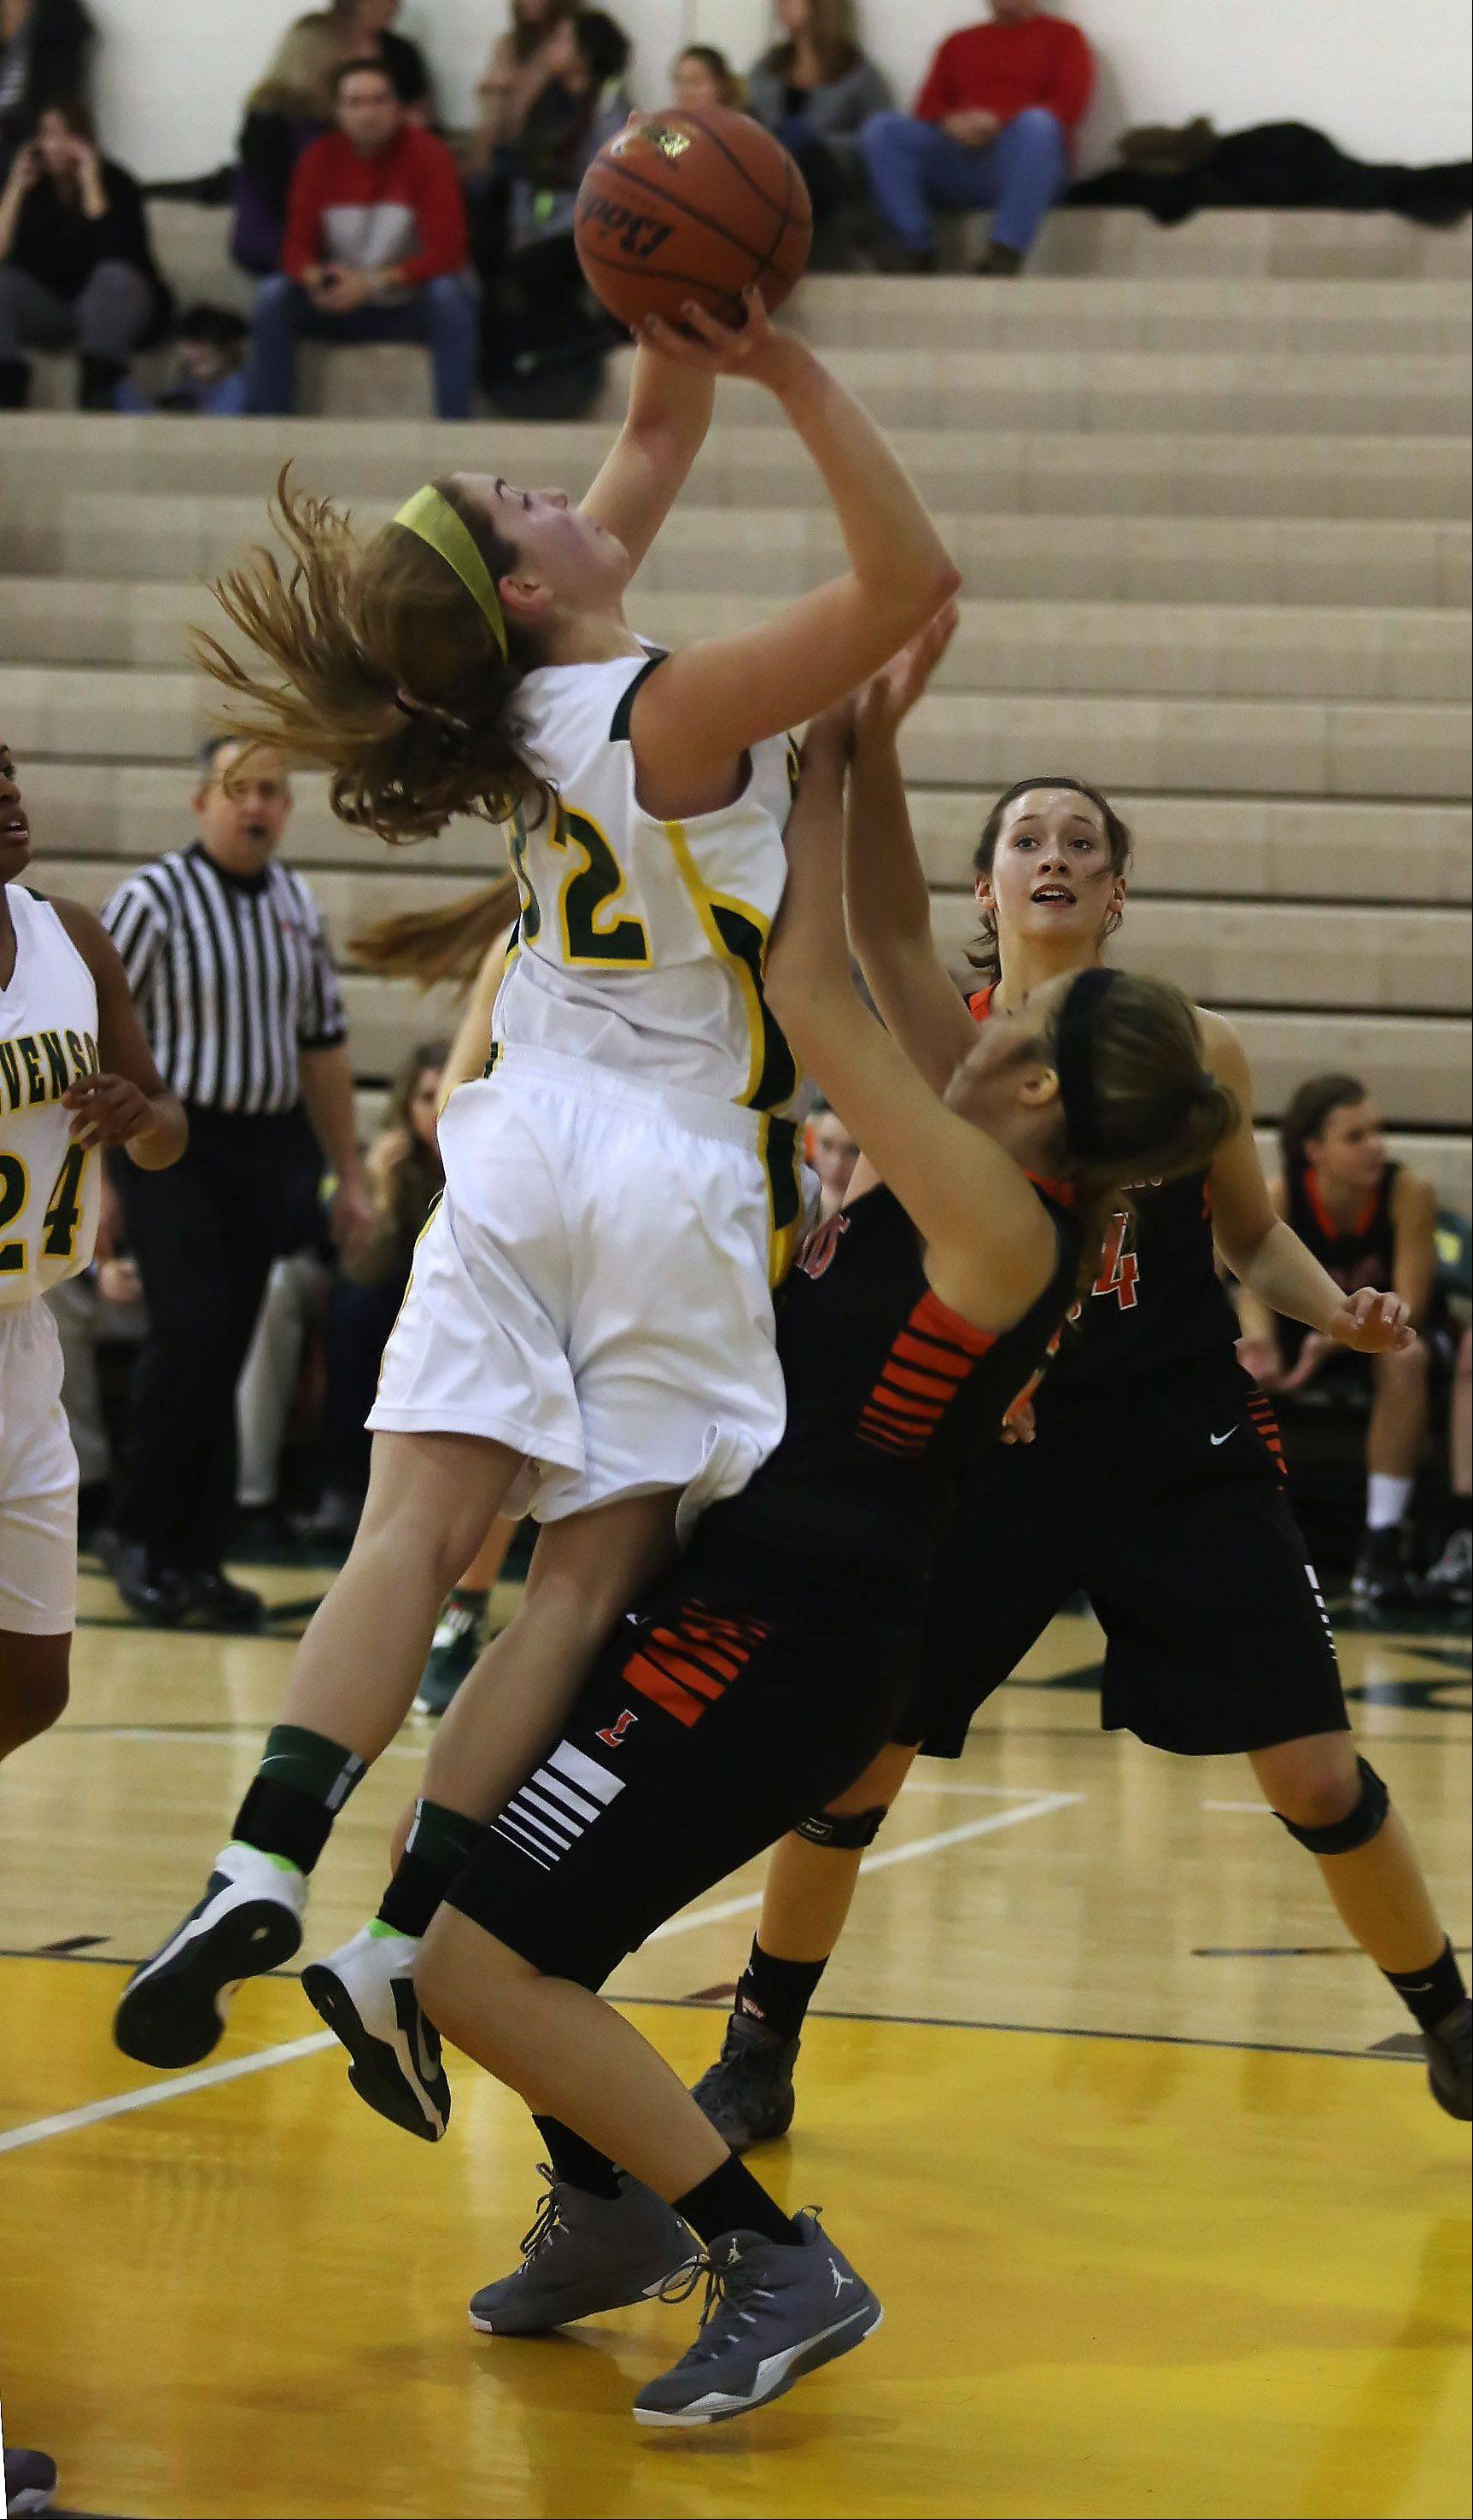 Libertyville forward Tara Eyre, right, takes a charge from Stevenson forward Sophia Way on Thursday at Stevenson.